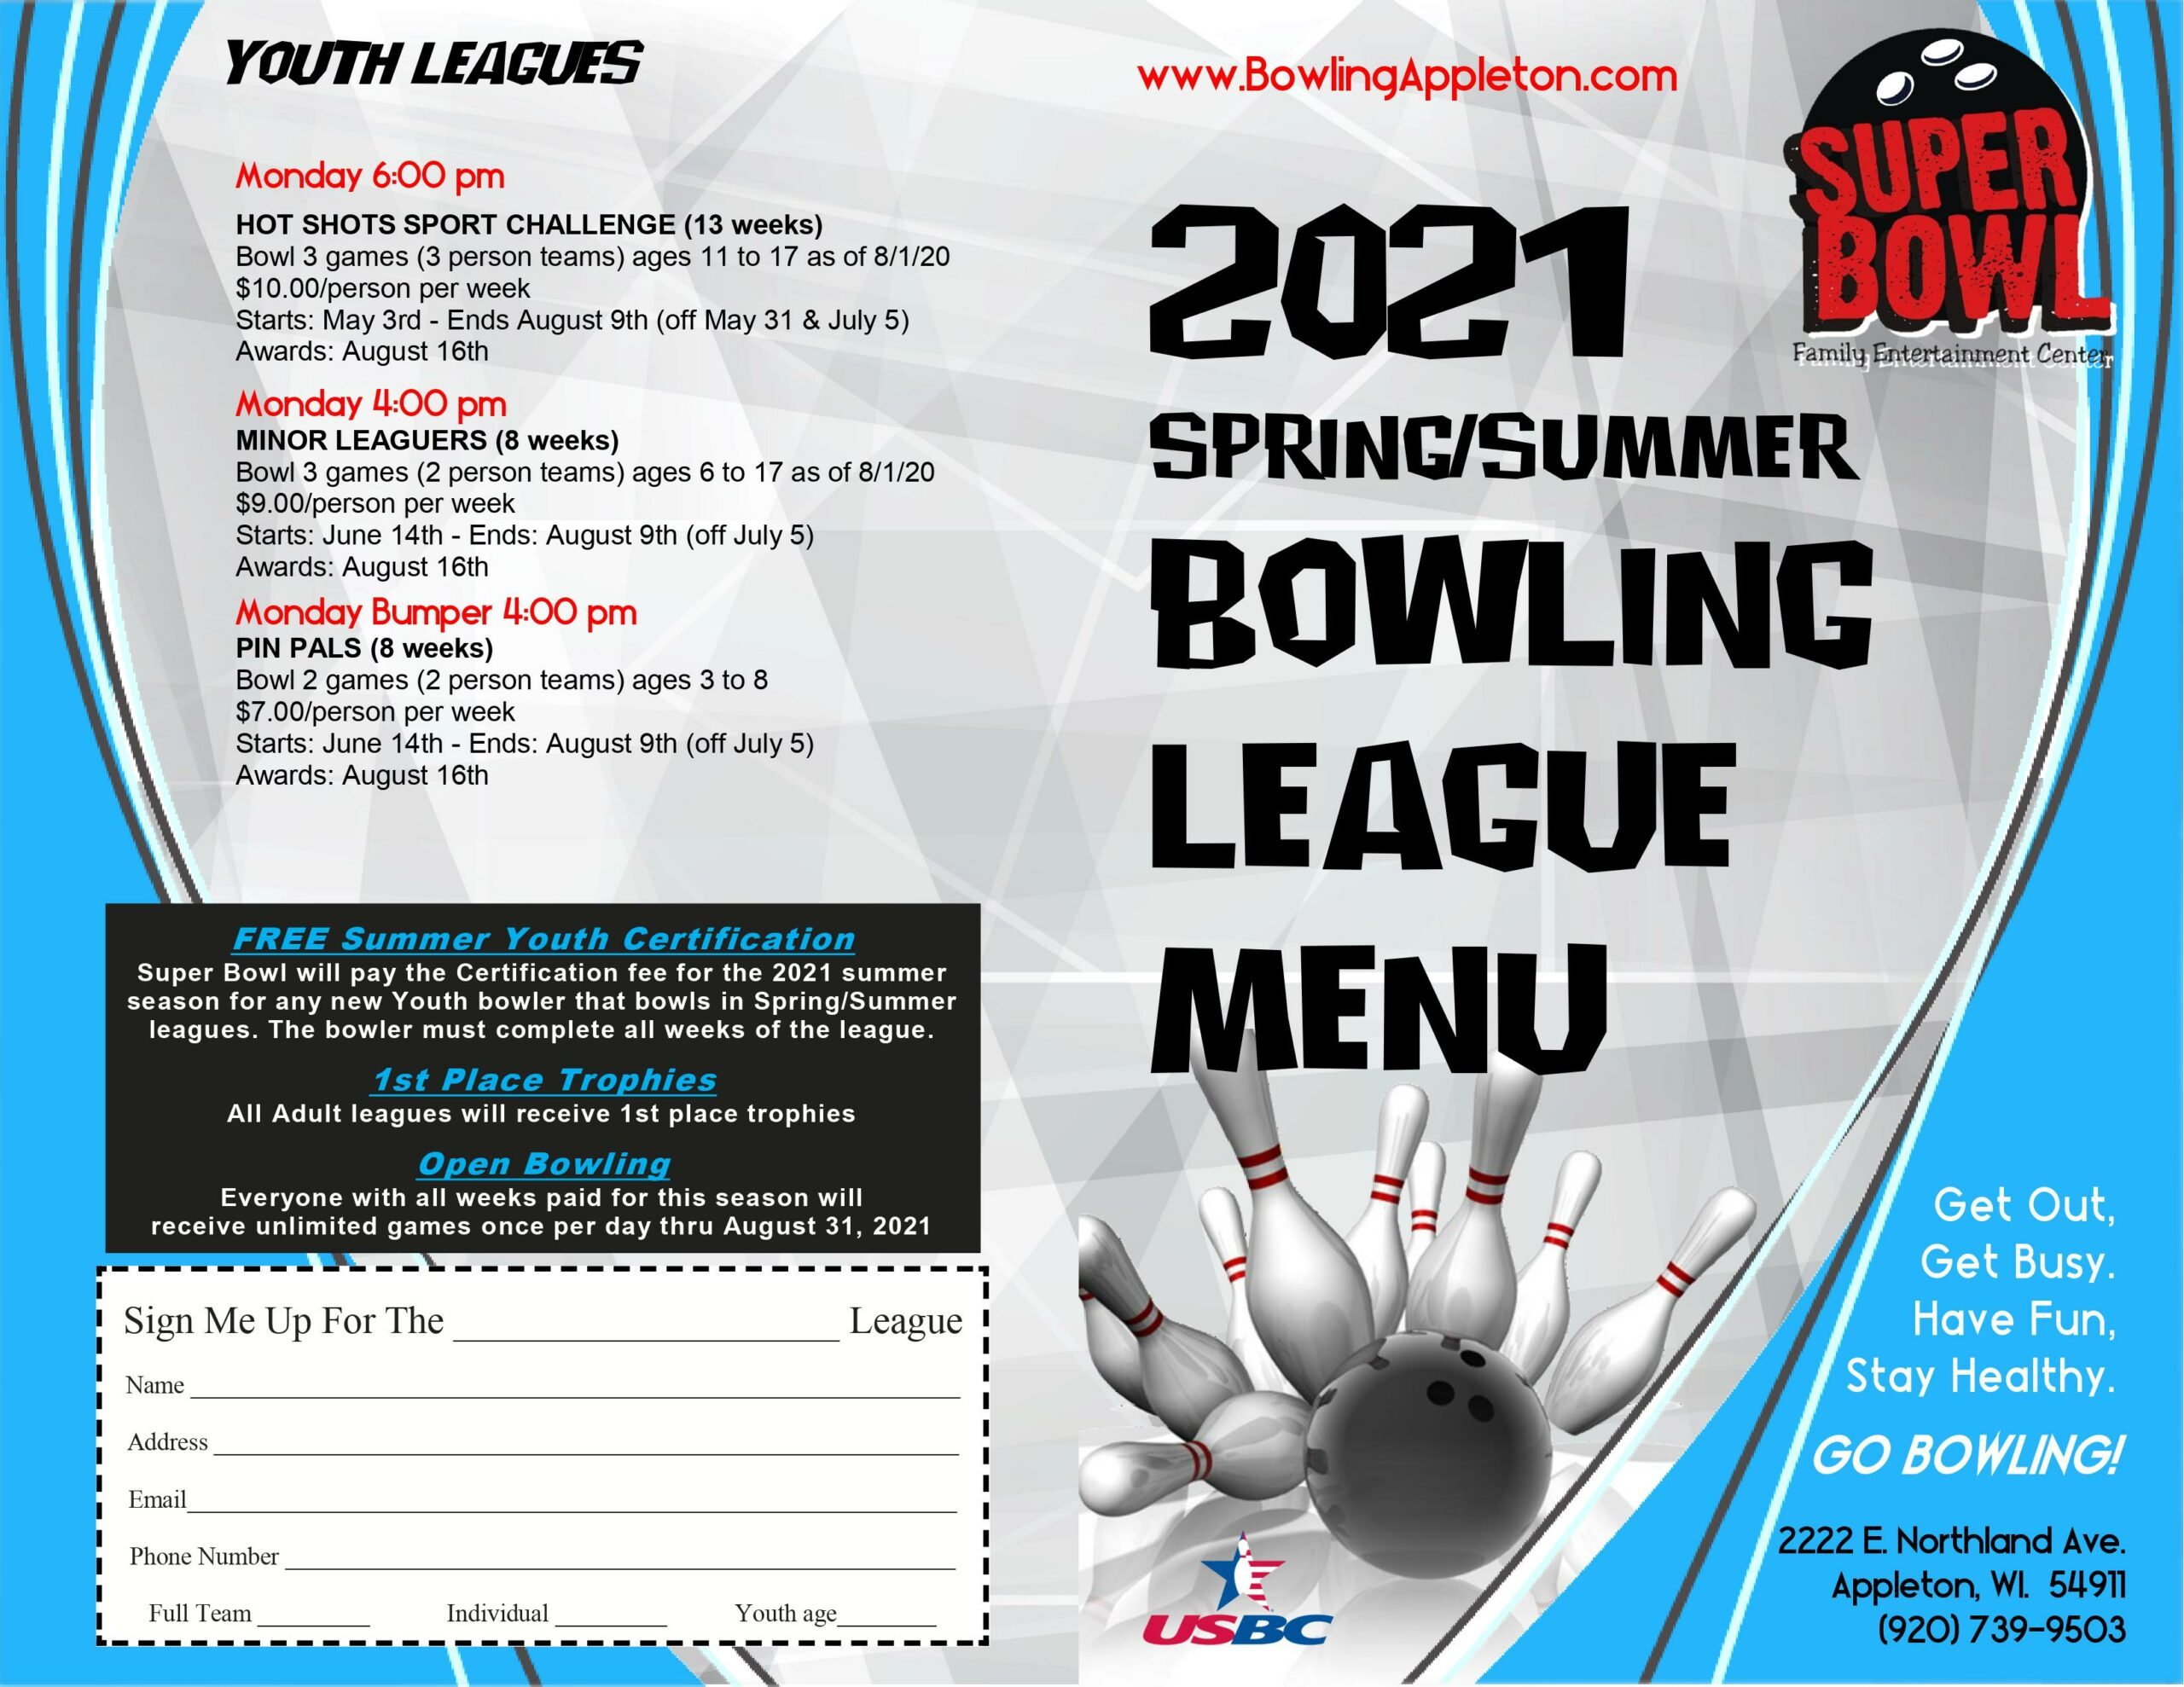 V2 Spring/Summer 2021 bowling leagues   youth leagues   youth bowling leagues   Appleton bowling leagues   Super Bowl